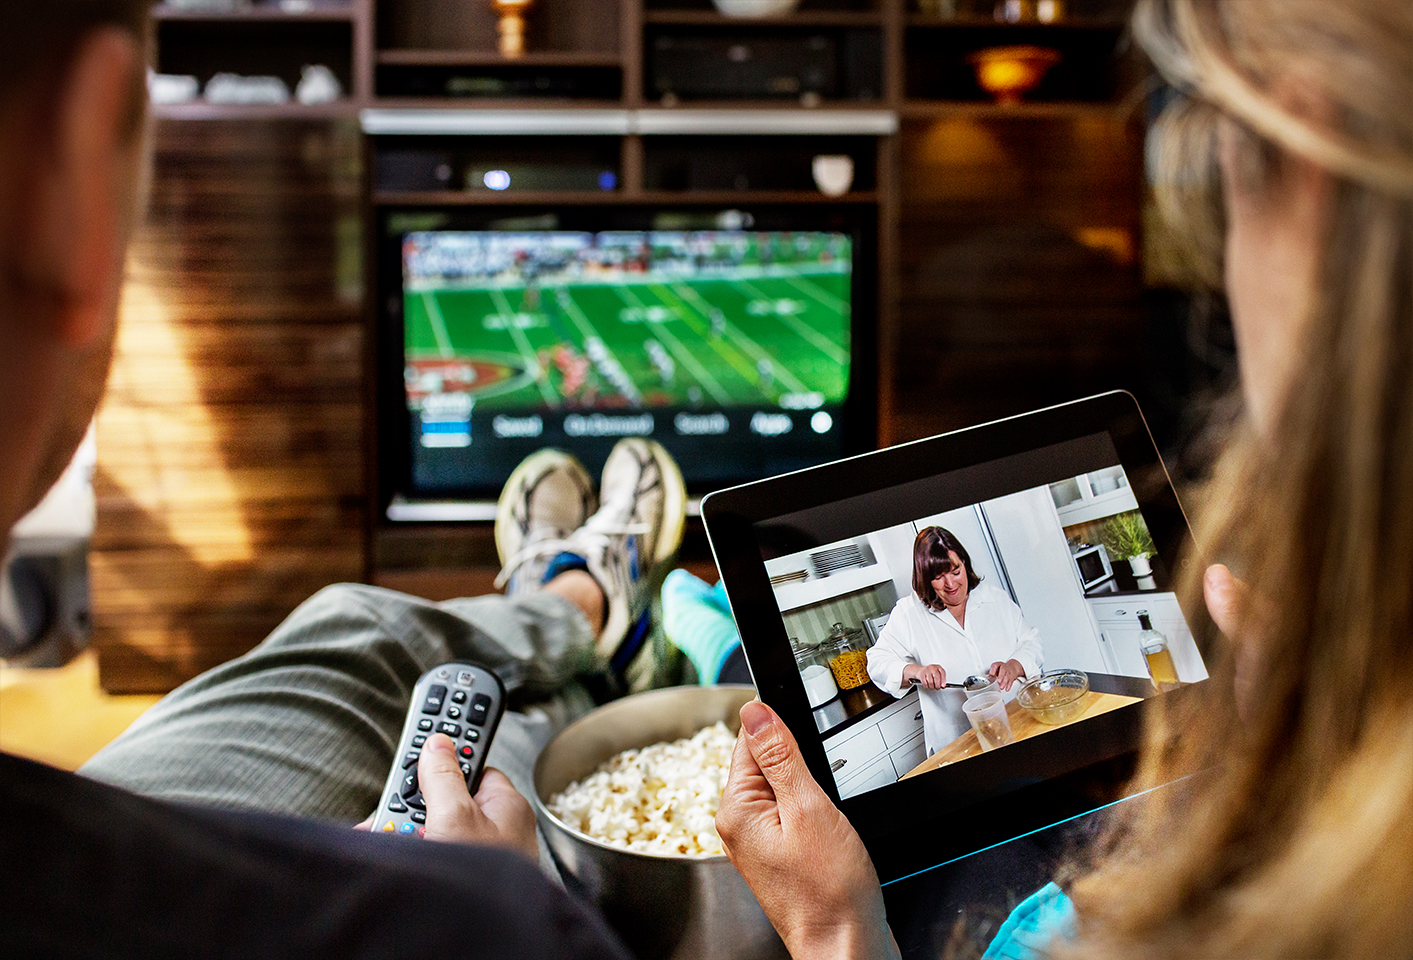 Comcast Launches X1 DVR with Cloud Technology in Central and ...